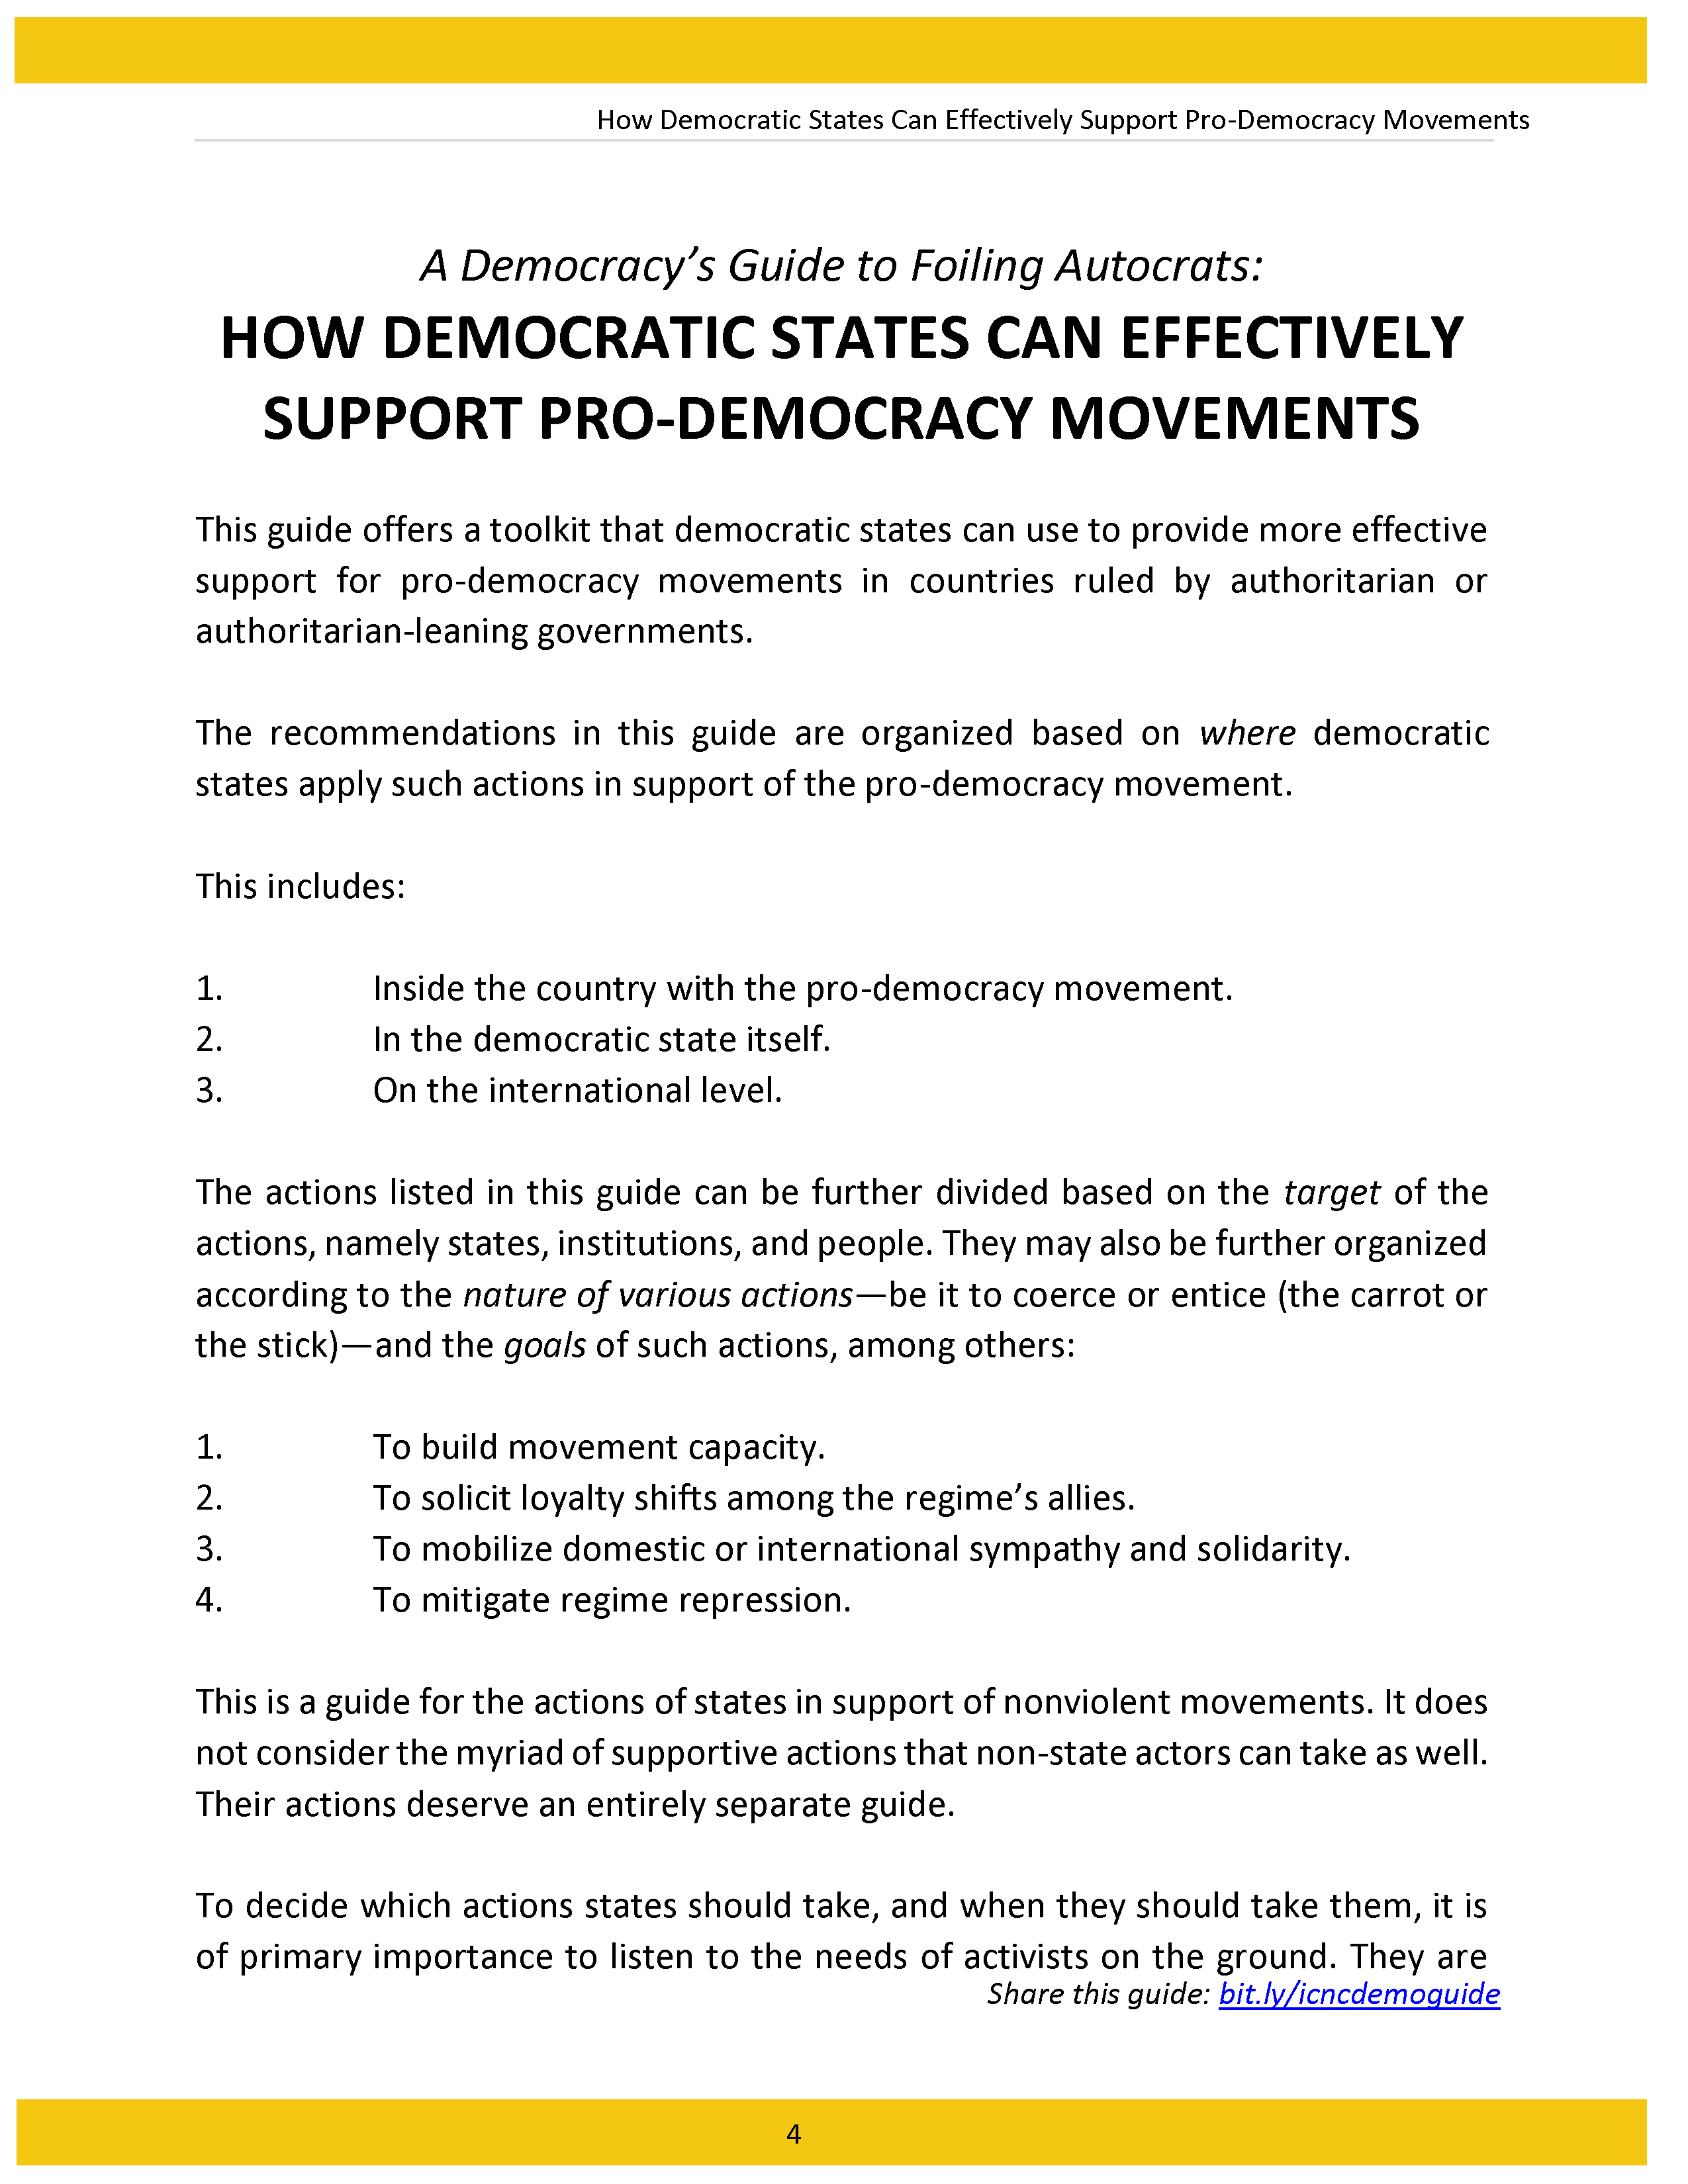 How Democratic States Can Effectively Support Pro-Democracy Movements